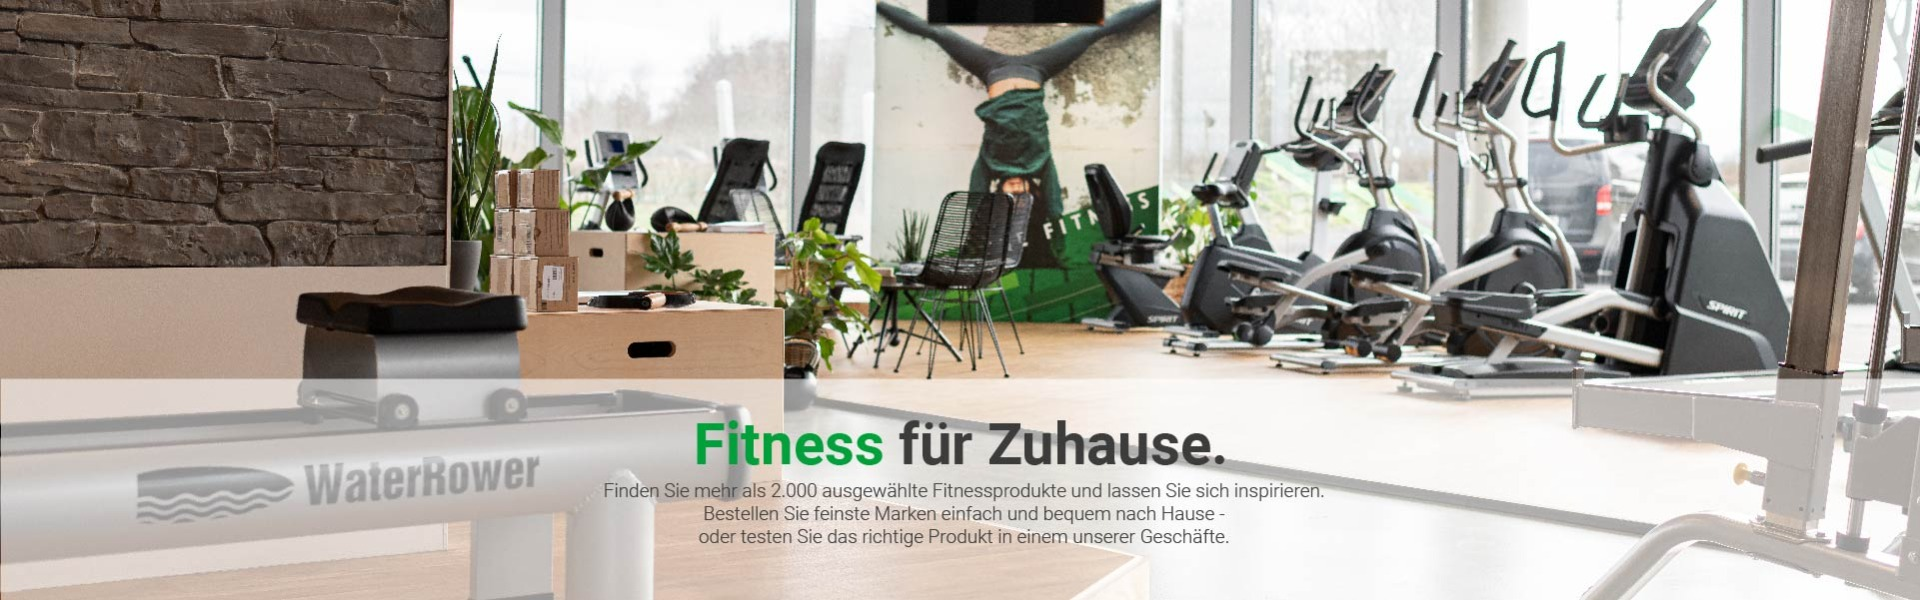 Fitness für Zuhause. Finden Sie mehr als 2.000 ausgewählte Fitnessprodukte und lassen Sie sich inspirieren. Bestellen Sie feinste Marken einfach und bequem nach Hause – oder testen Sie das richtige Produkt in einem unserer Geschäfte.